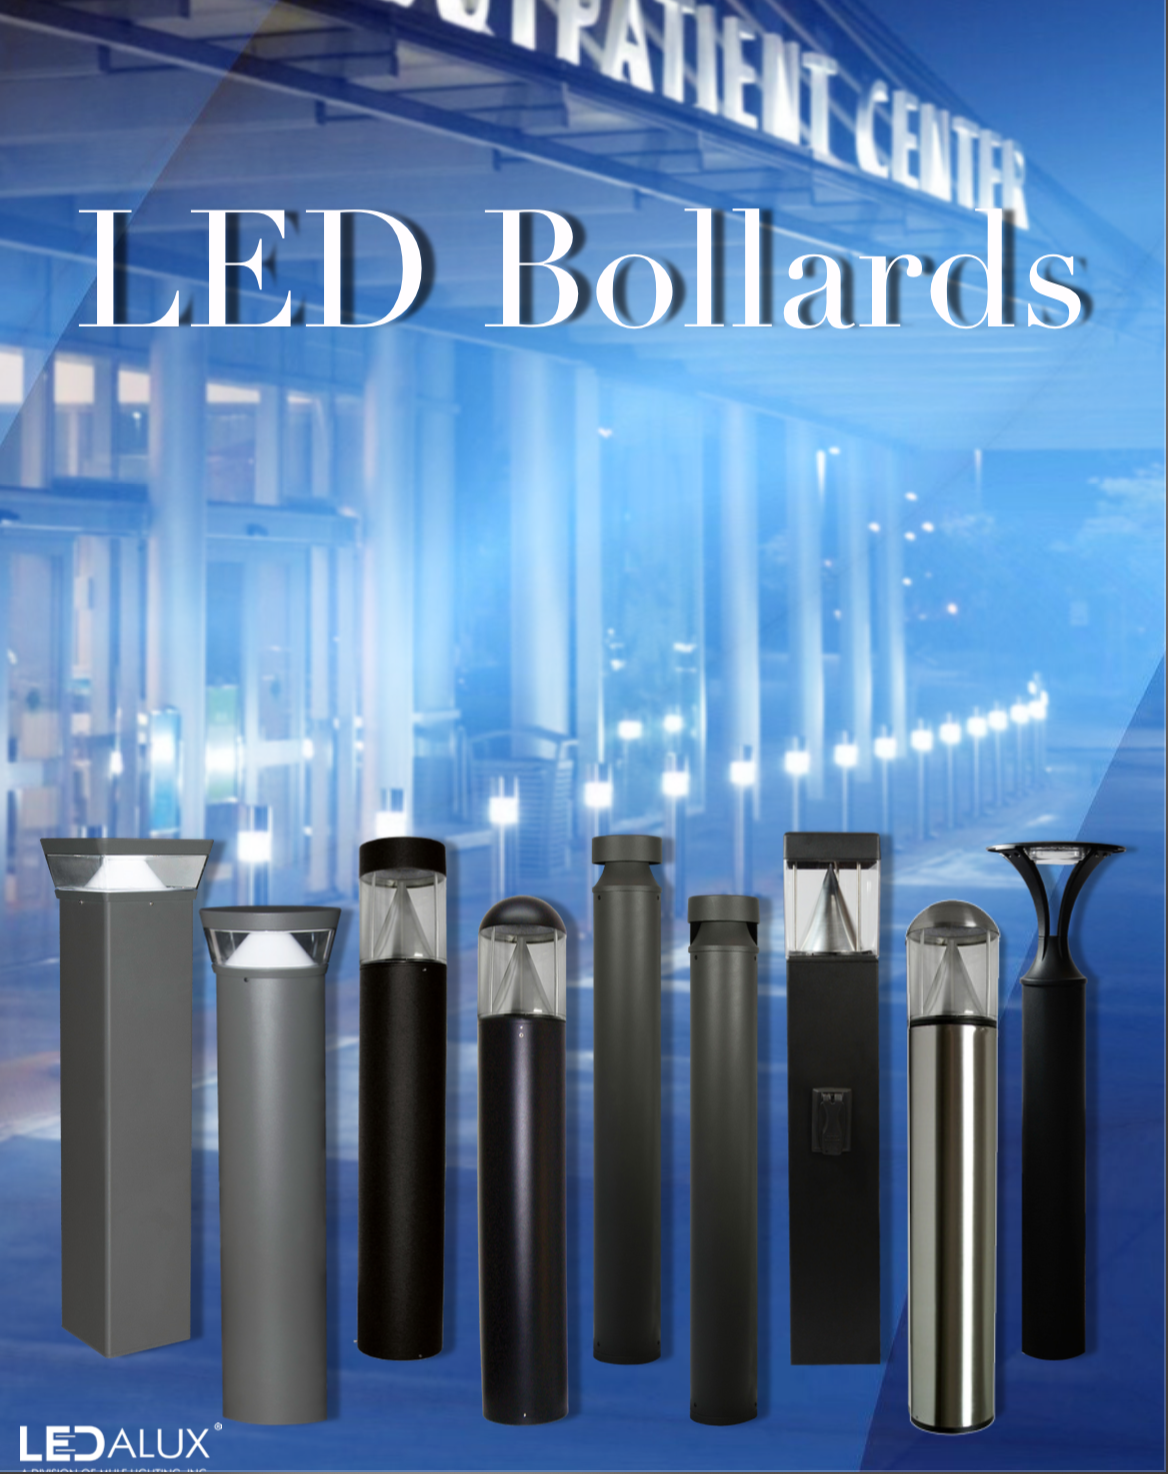 LEDalux LED Bollards Literature